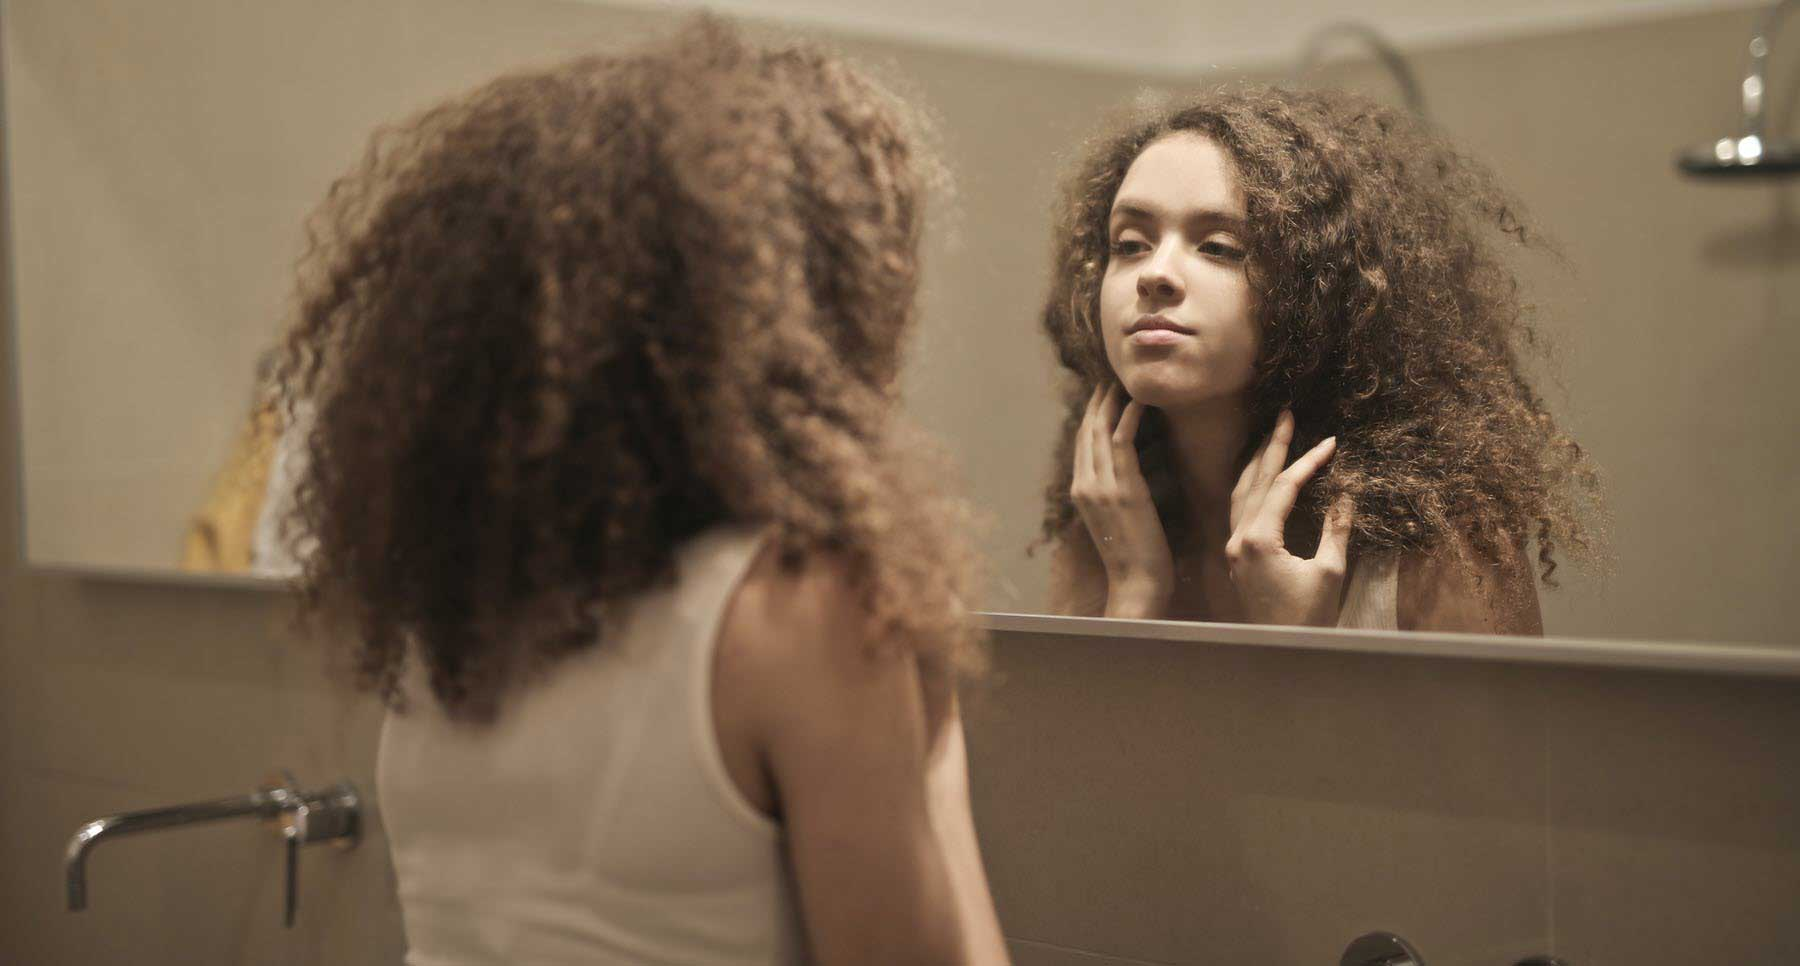 6-Ways-to-Stop-Obsessing-Over-What-You-See-in-the-Mirror